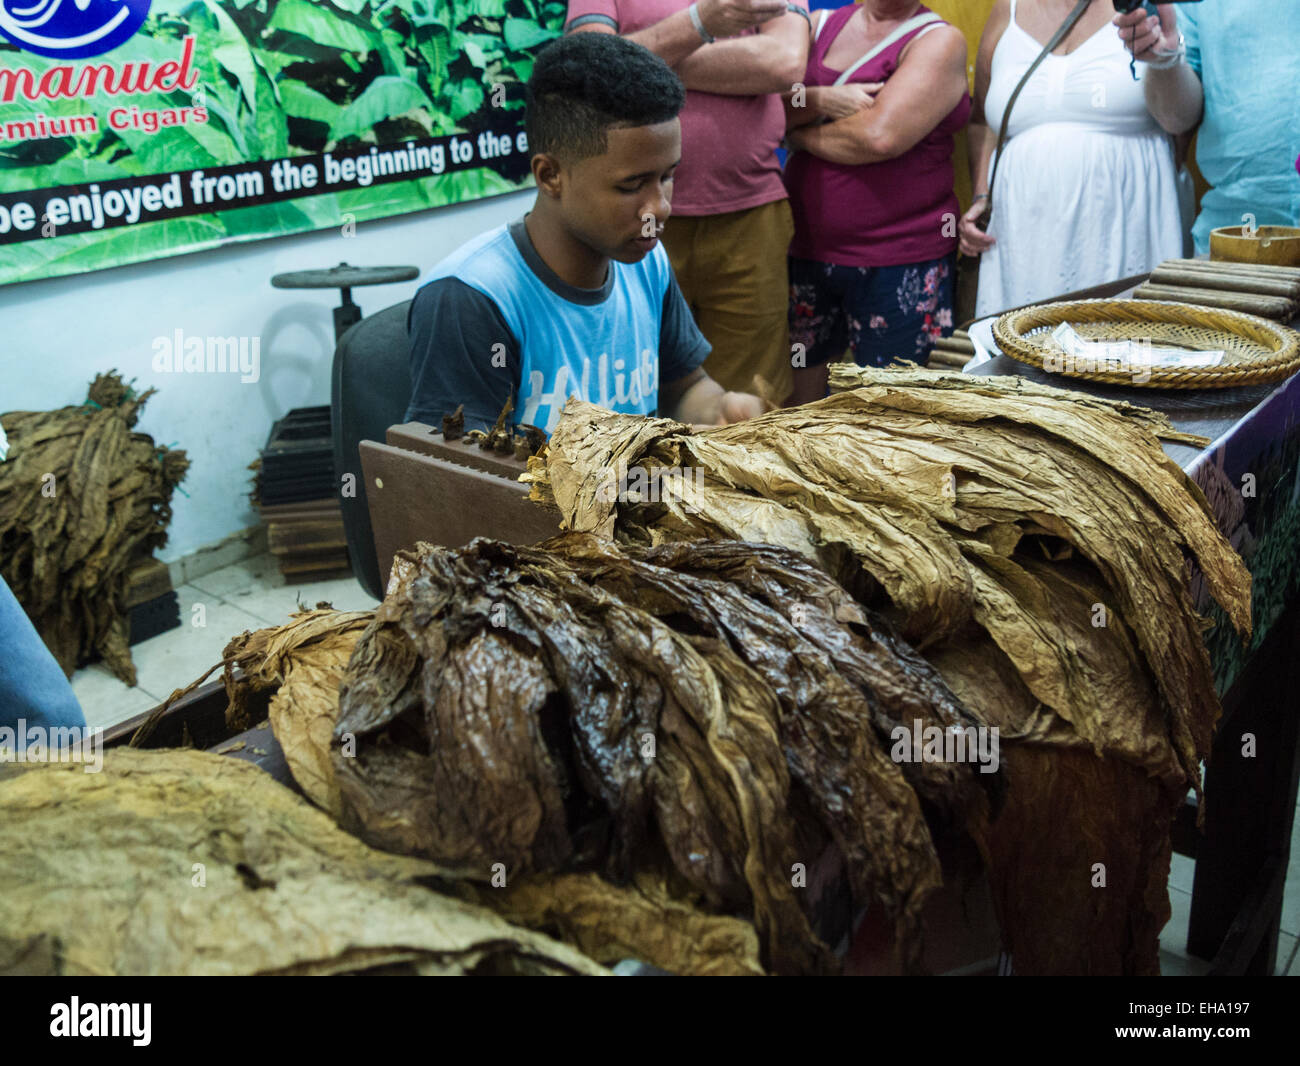 Young Dominican man demonstrating rolling cigars to tourists Dominican Republic cigar producing factory using piles - Stock Image